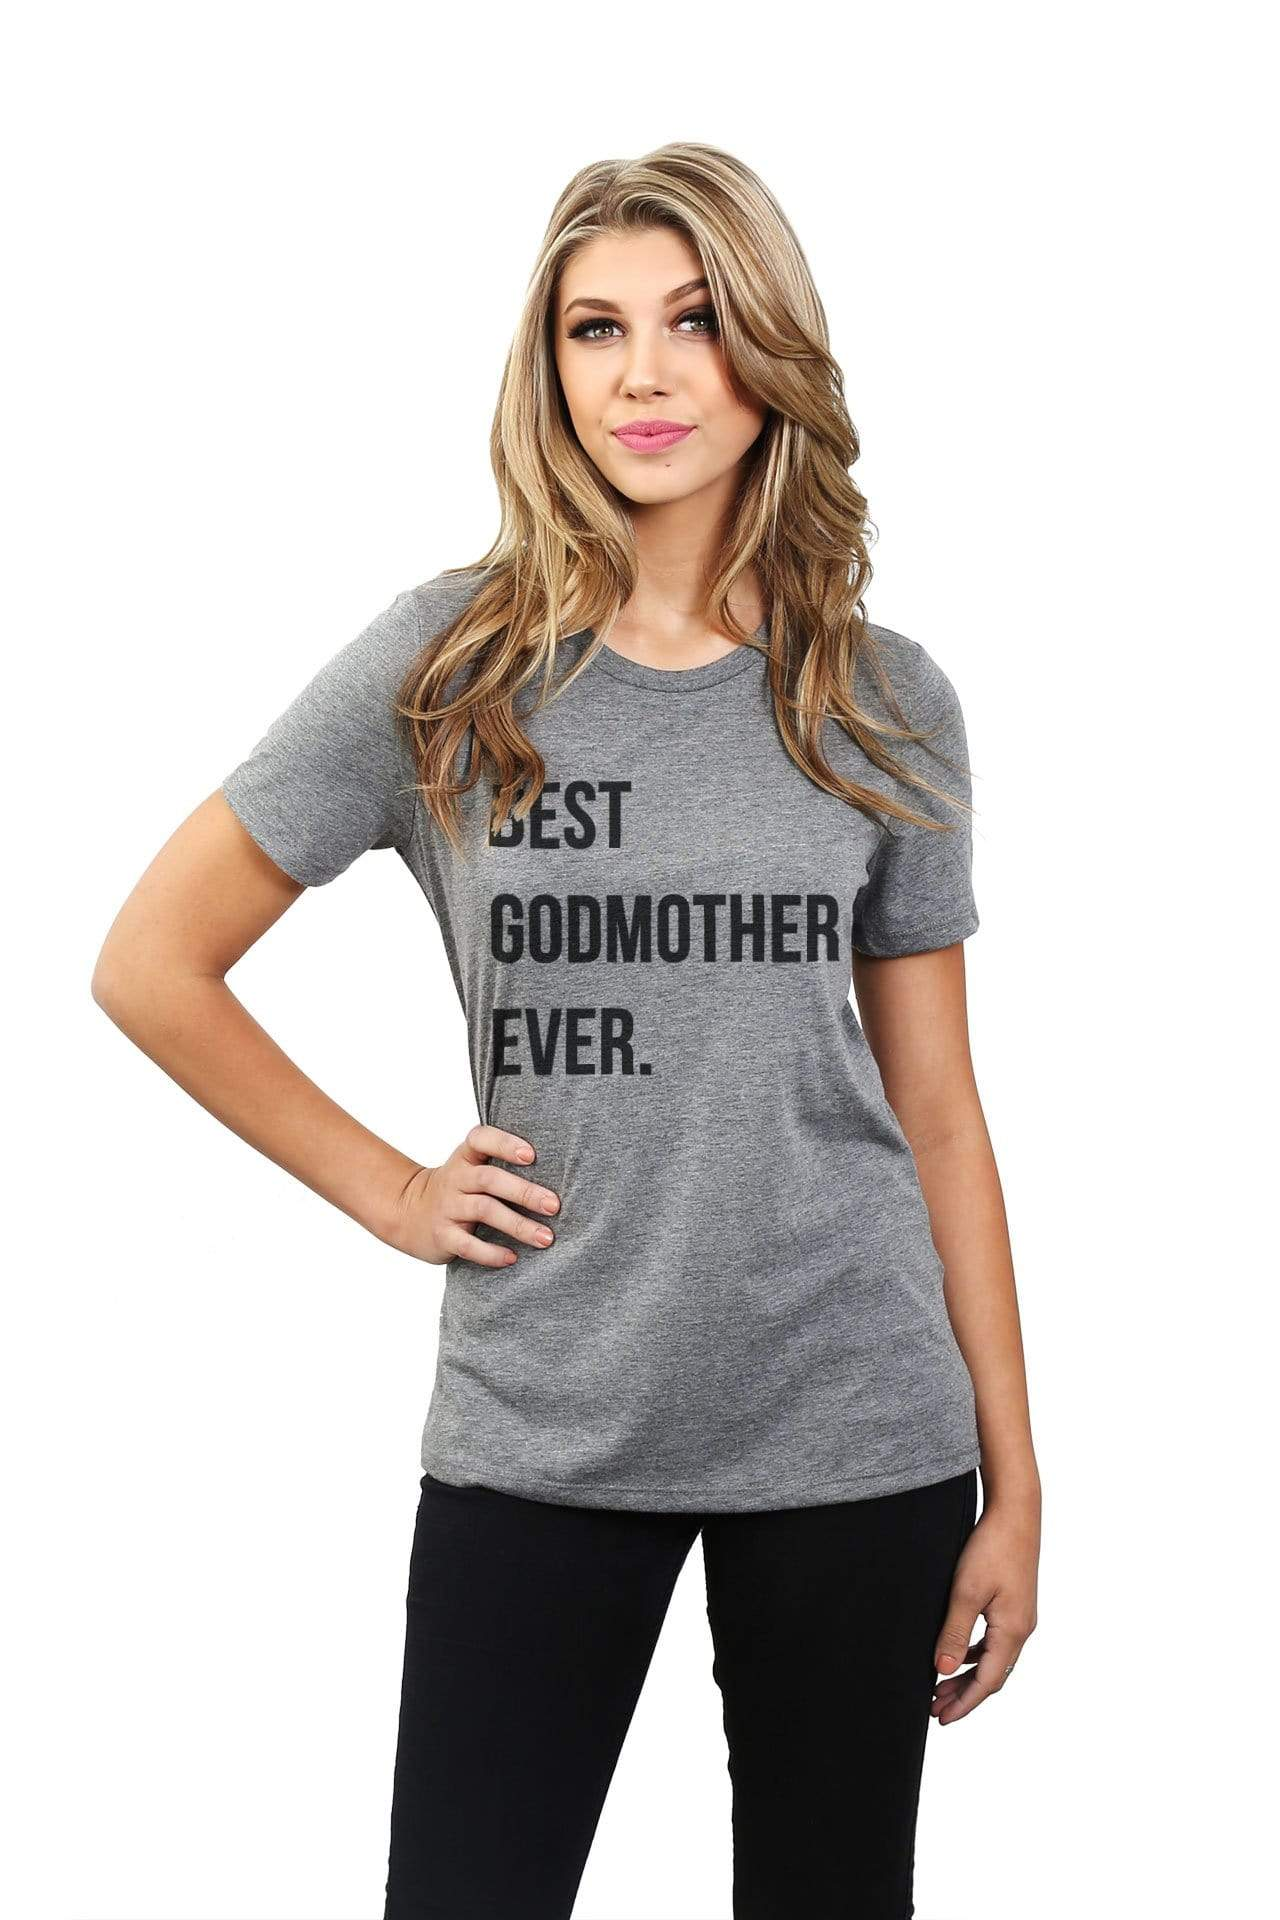 Best Godmother Ever - Thread Tank | Stories You Can Wear | T-Shirts, Tank Tops and Sweatshirts